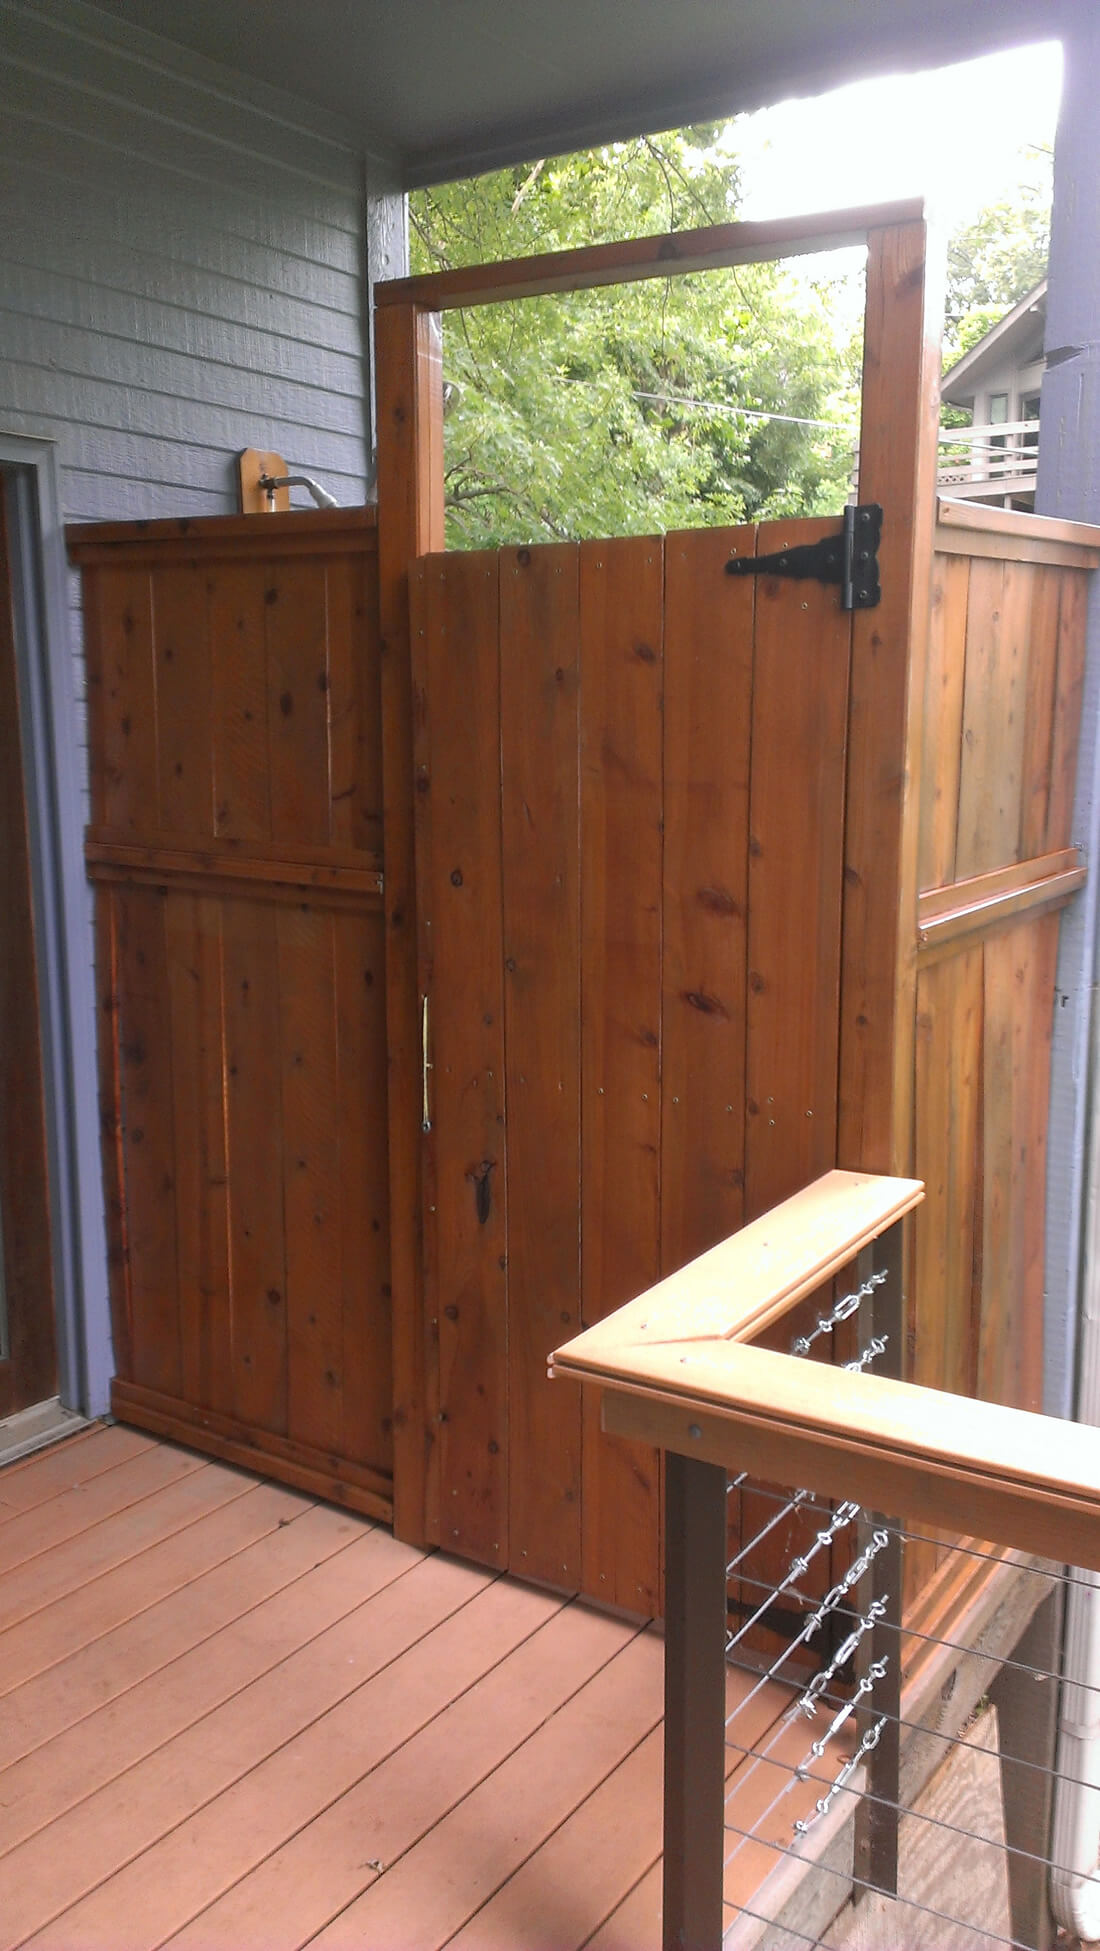 Outdoor Shower Stain - Staining Kansas City